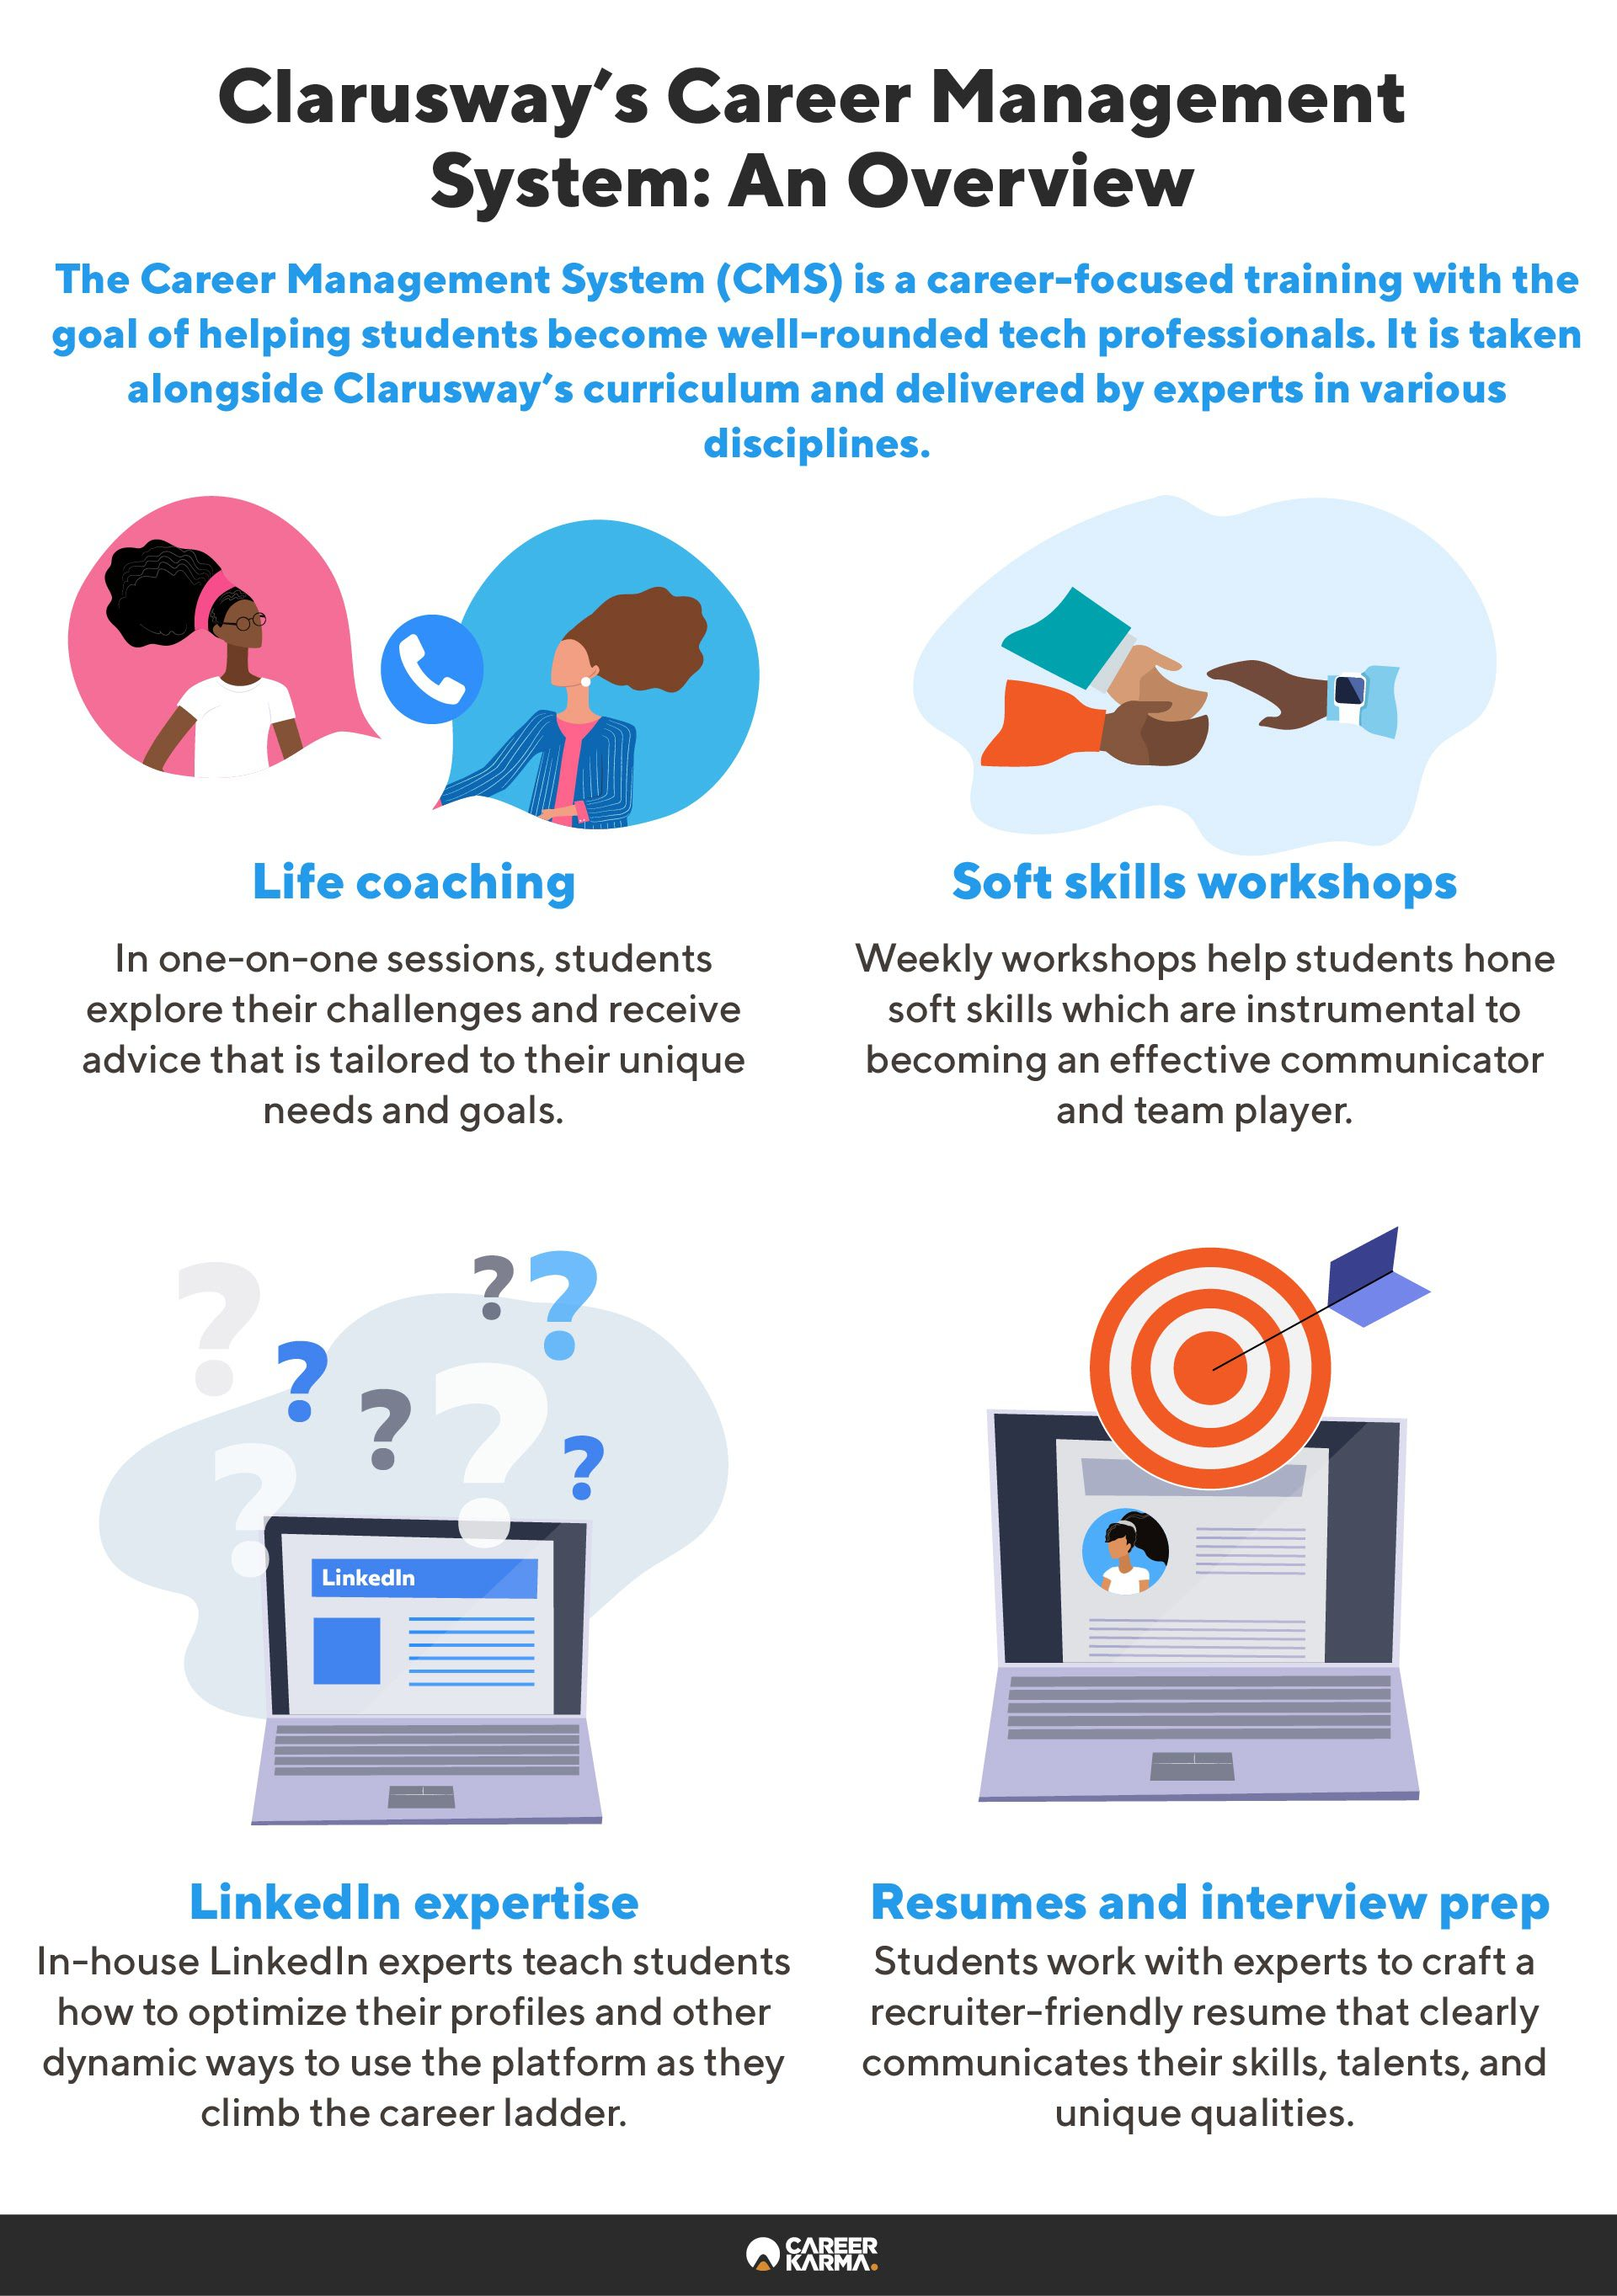 An infographic covering the key features of Clarusway's Career Management Service